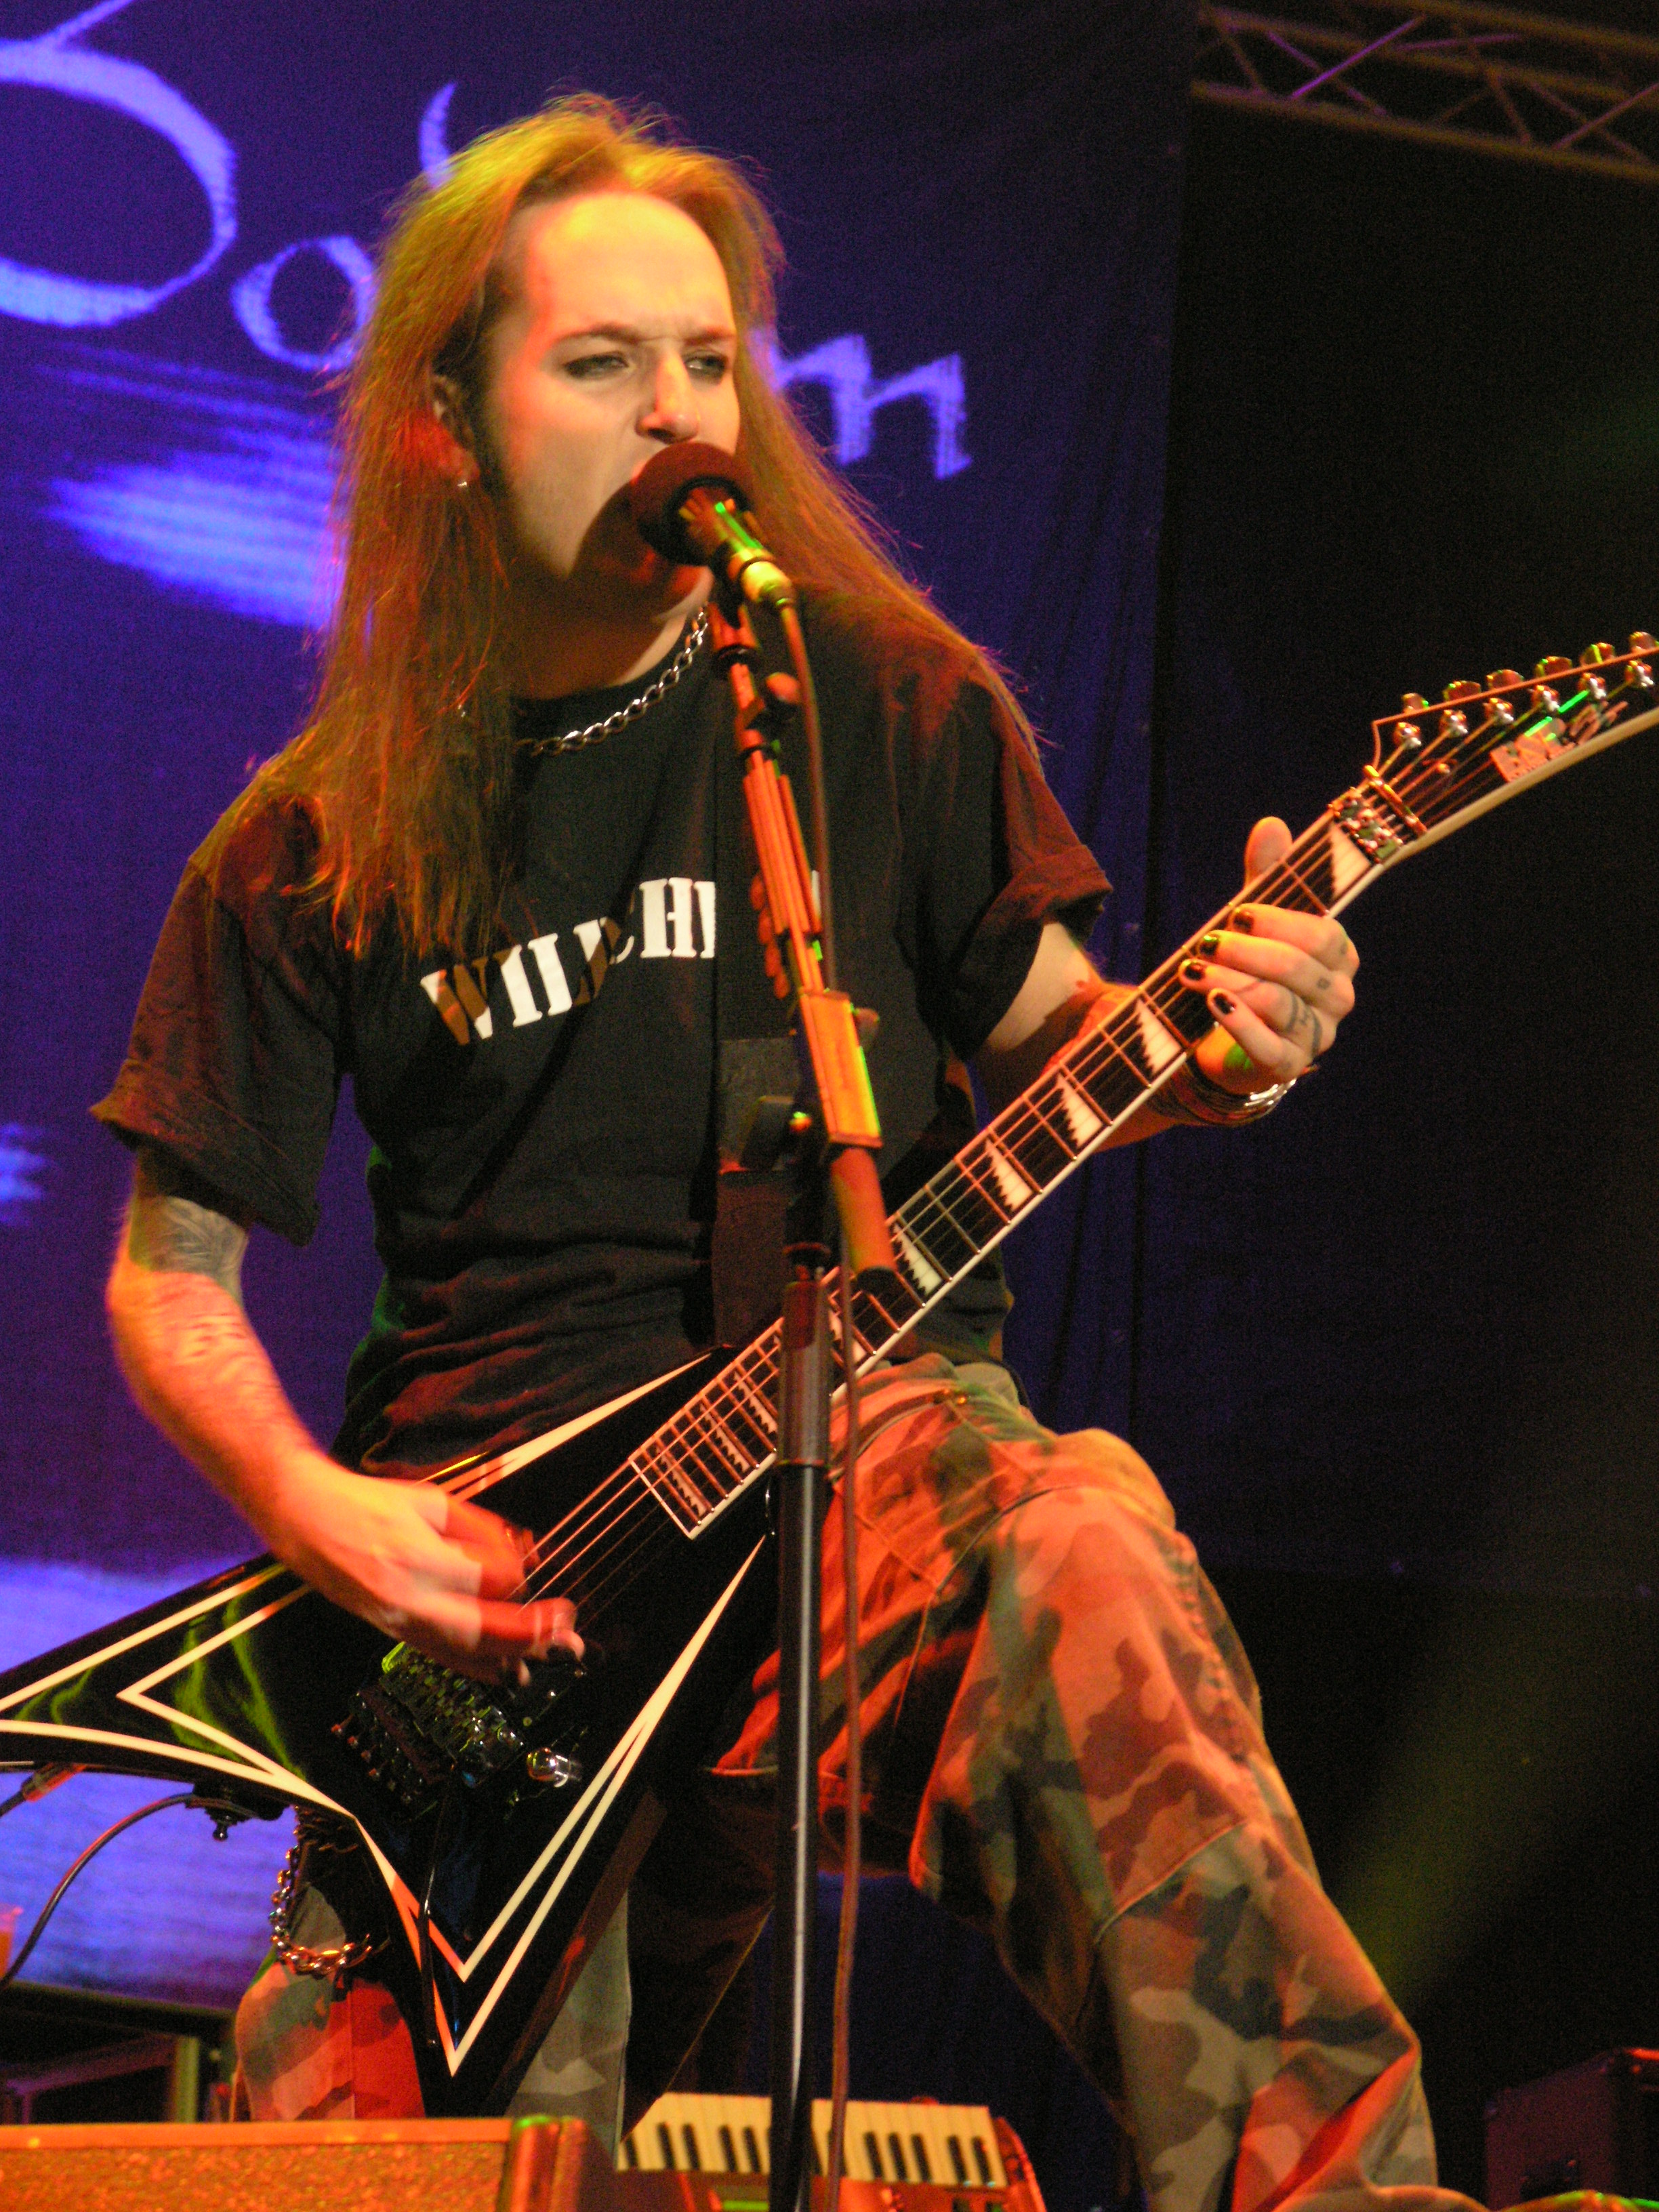 http://upload.wikimedia.org/wikipedia/commons/5/57/Masters_of_Rock_2007_-_Children_of_Bodom_-_Alexi_Laiho_-_02.jpg